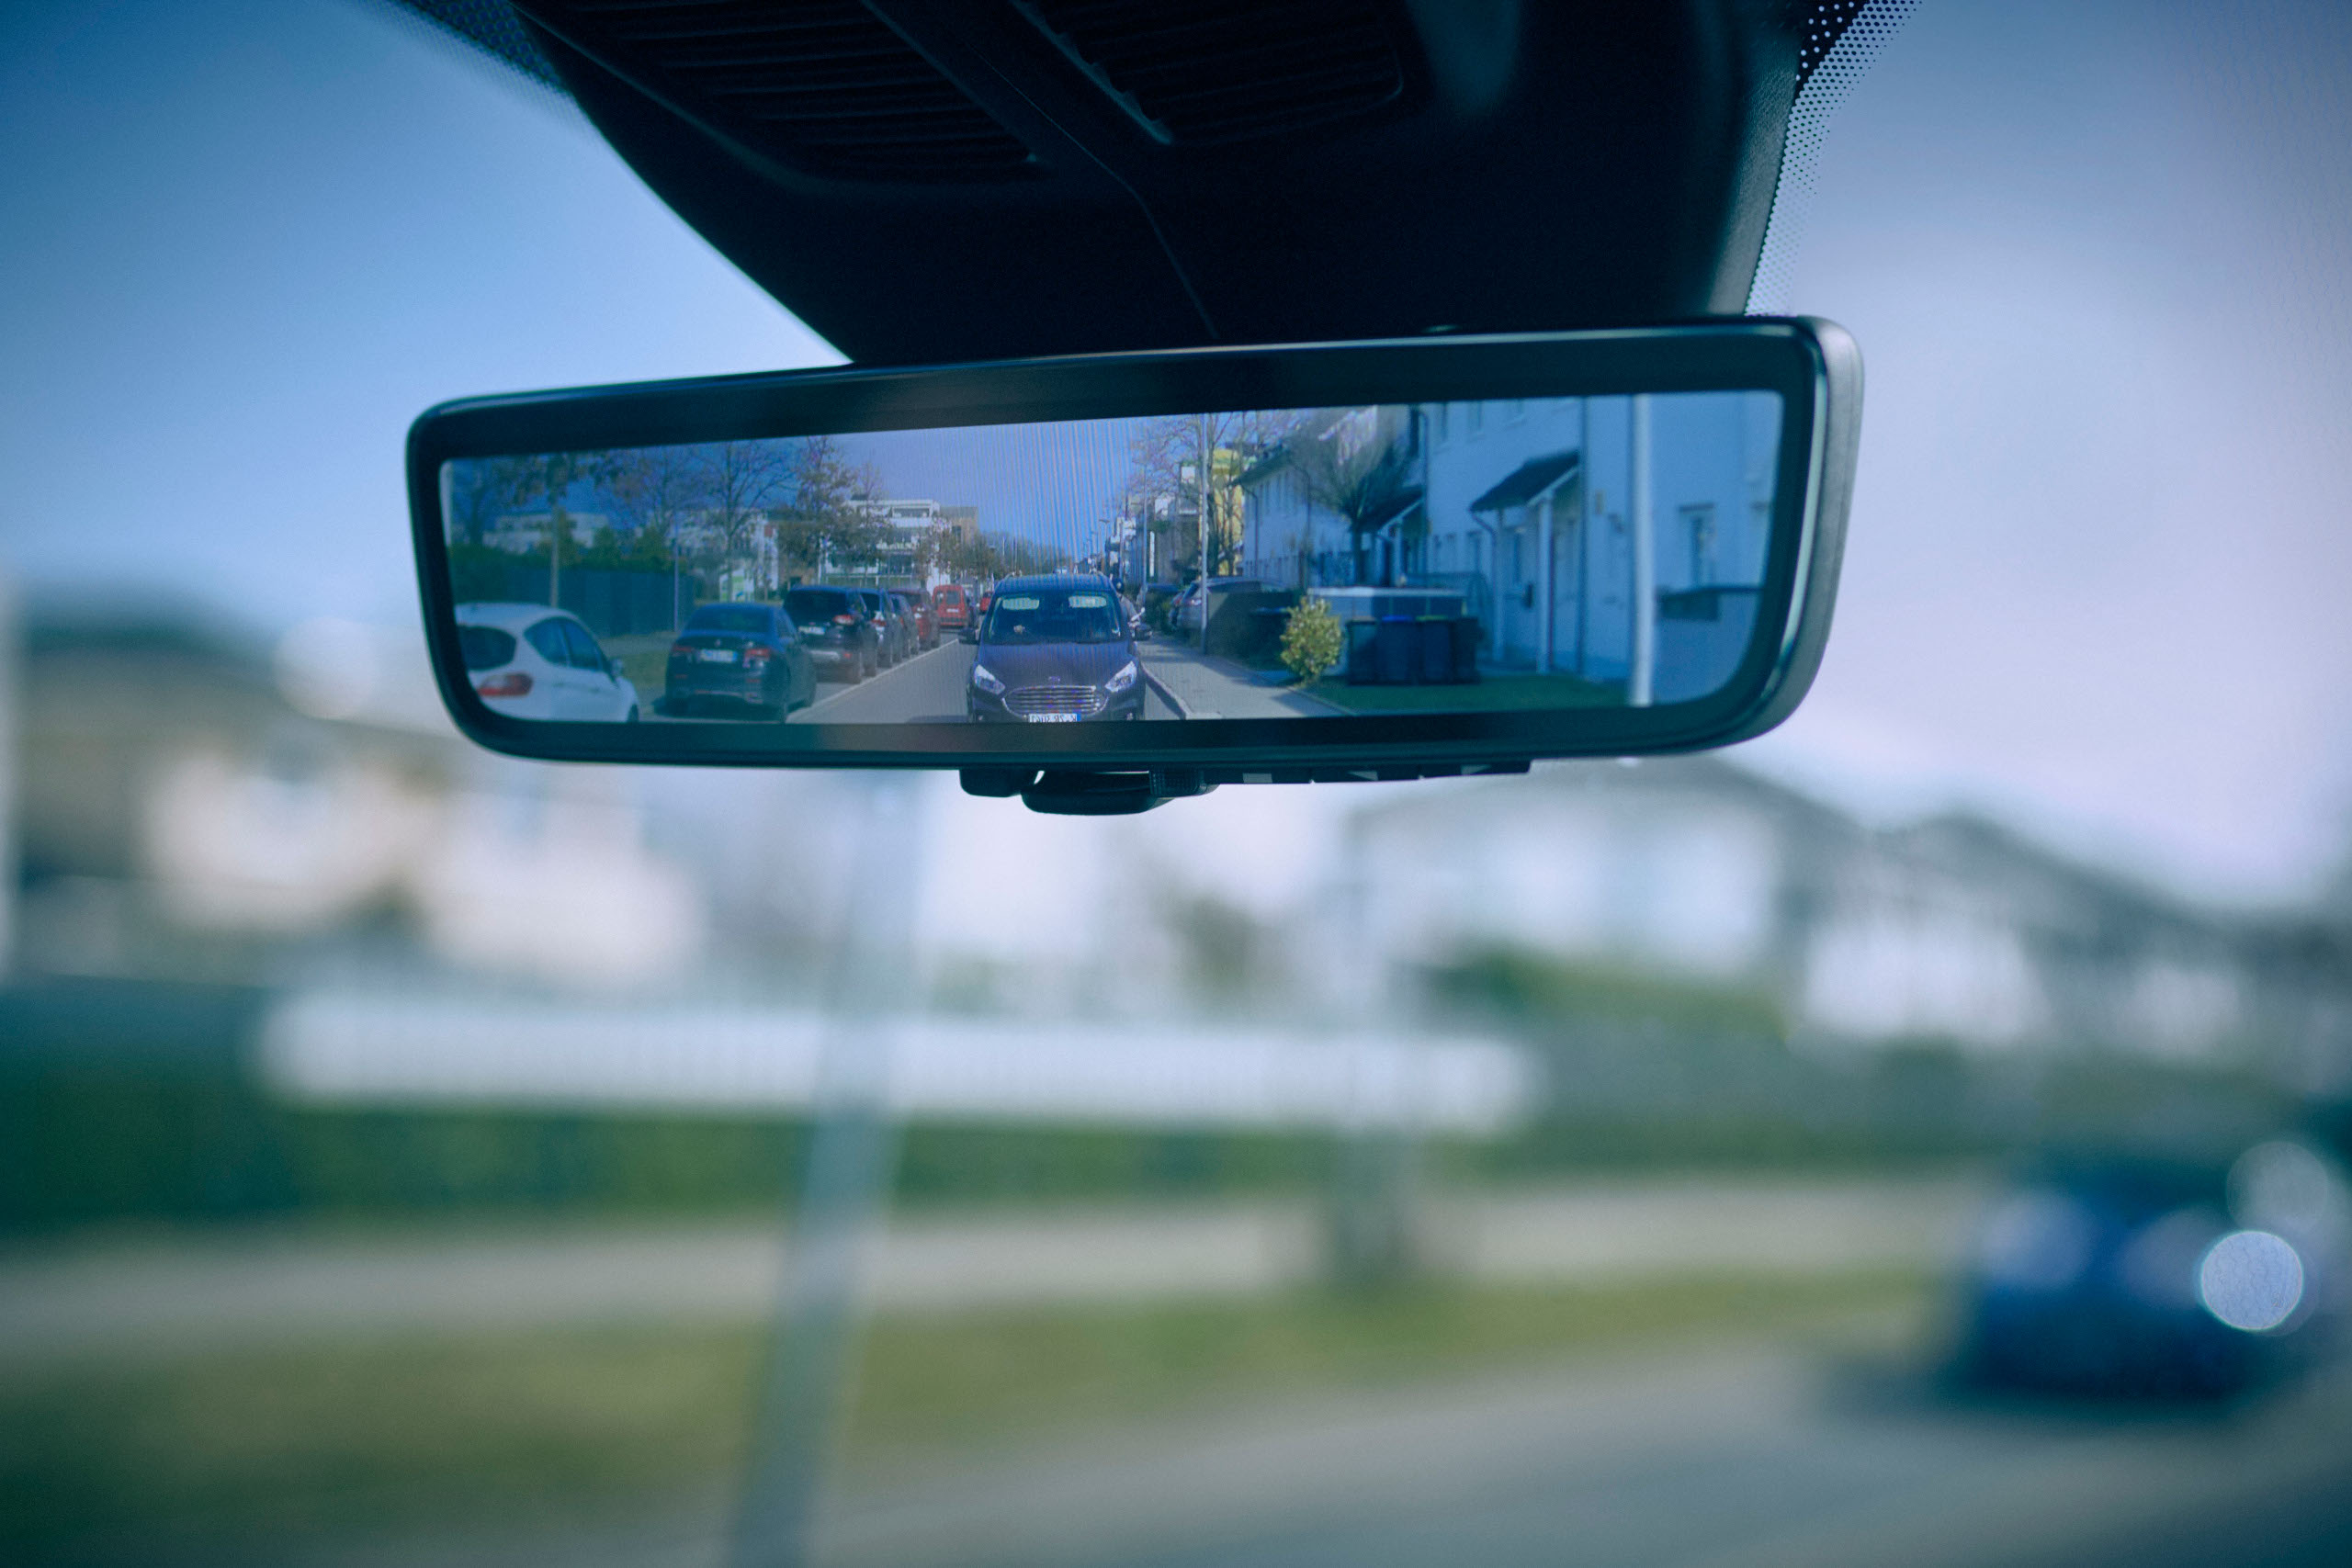 Ford Releases a Smart Mirror System to Aid Van Drivers